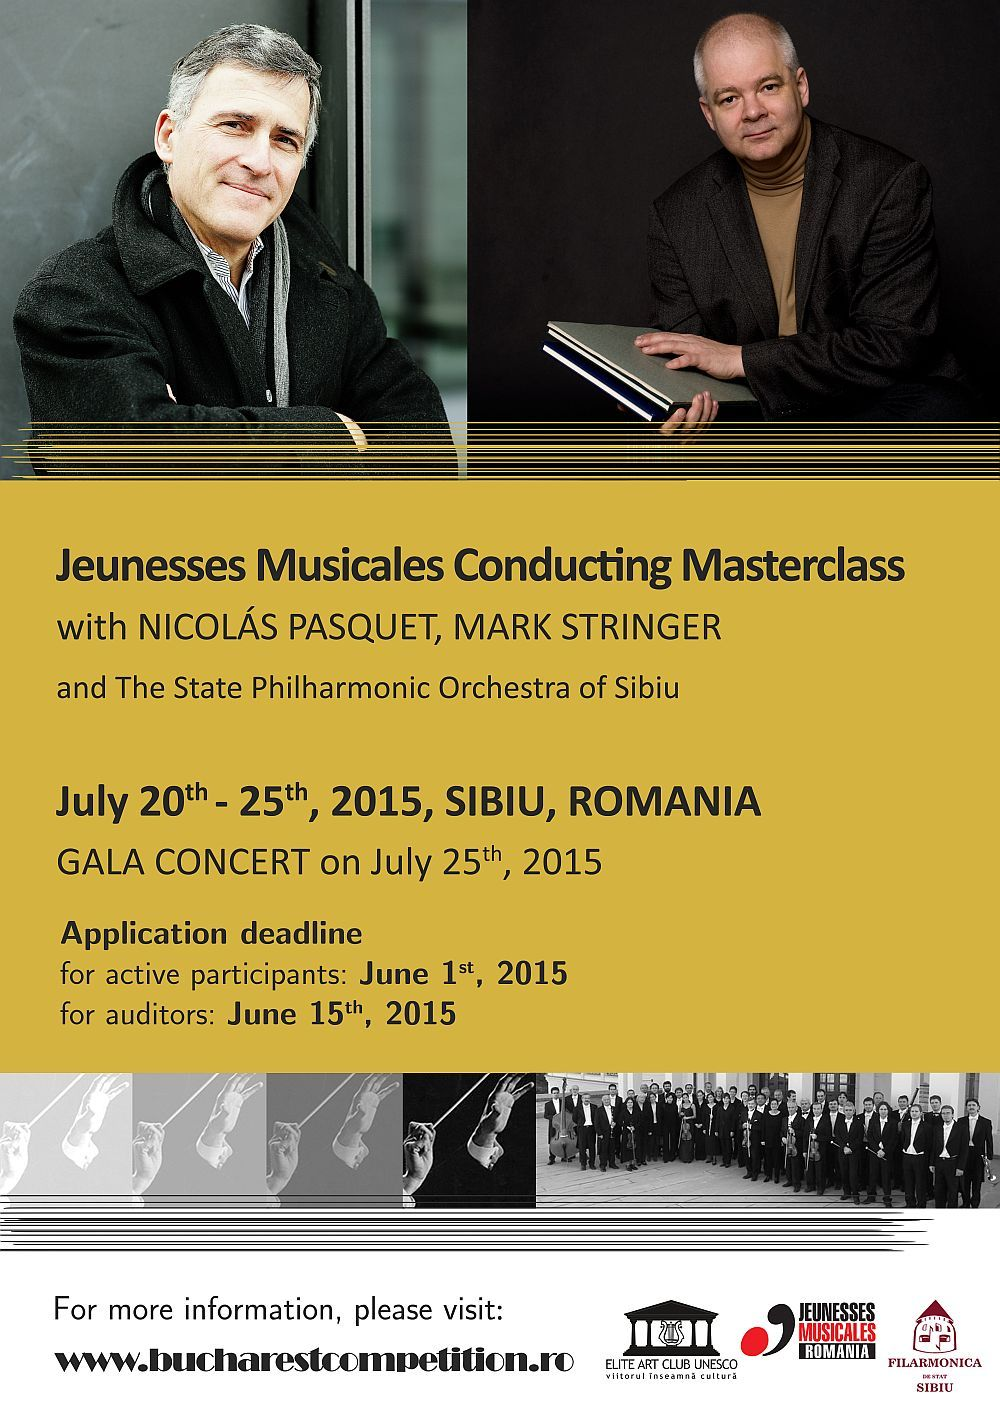 Jeunesses Musicales Conducting Masterclass July 20th 25th, 2015, Sibiu, ROMANIA, with NICOLÁS PASQUET and MARK STRINGER #classicalmusic #jmromania #jminetwork #eliteartclubunesco